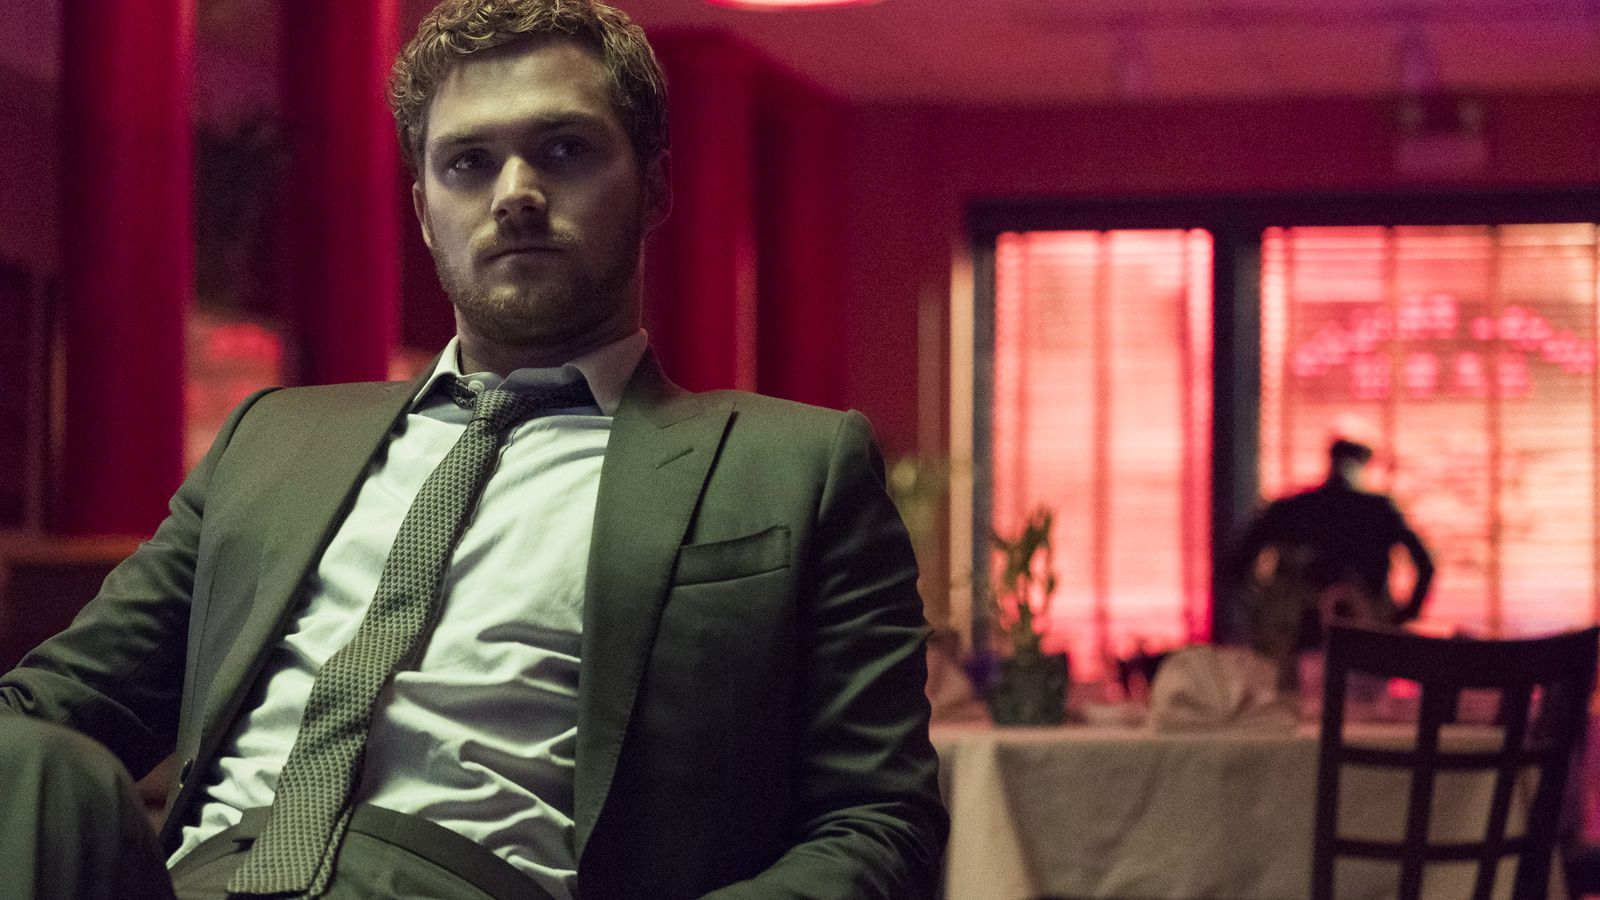 The Defenders is a blueprint on how to make Iron Fist suck less